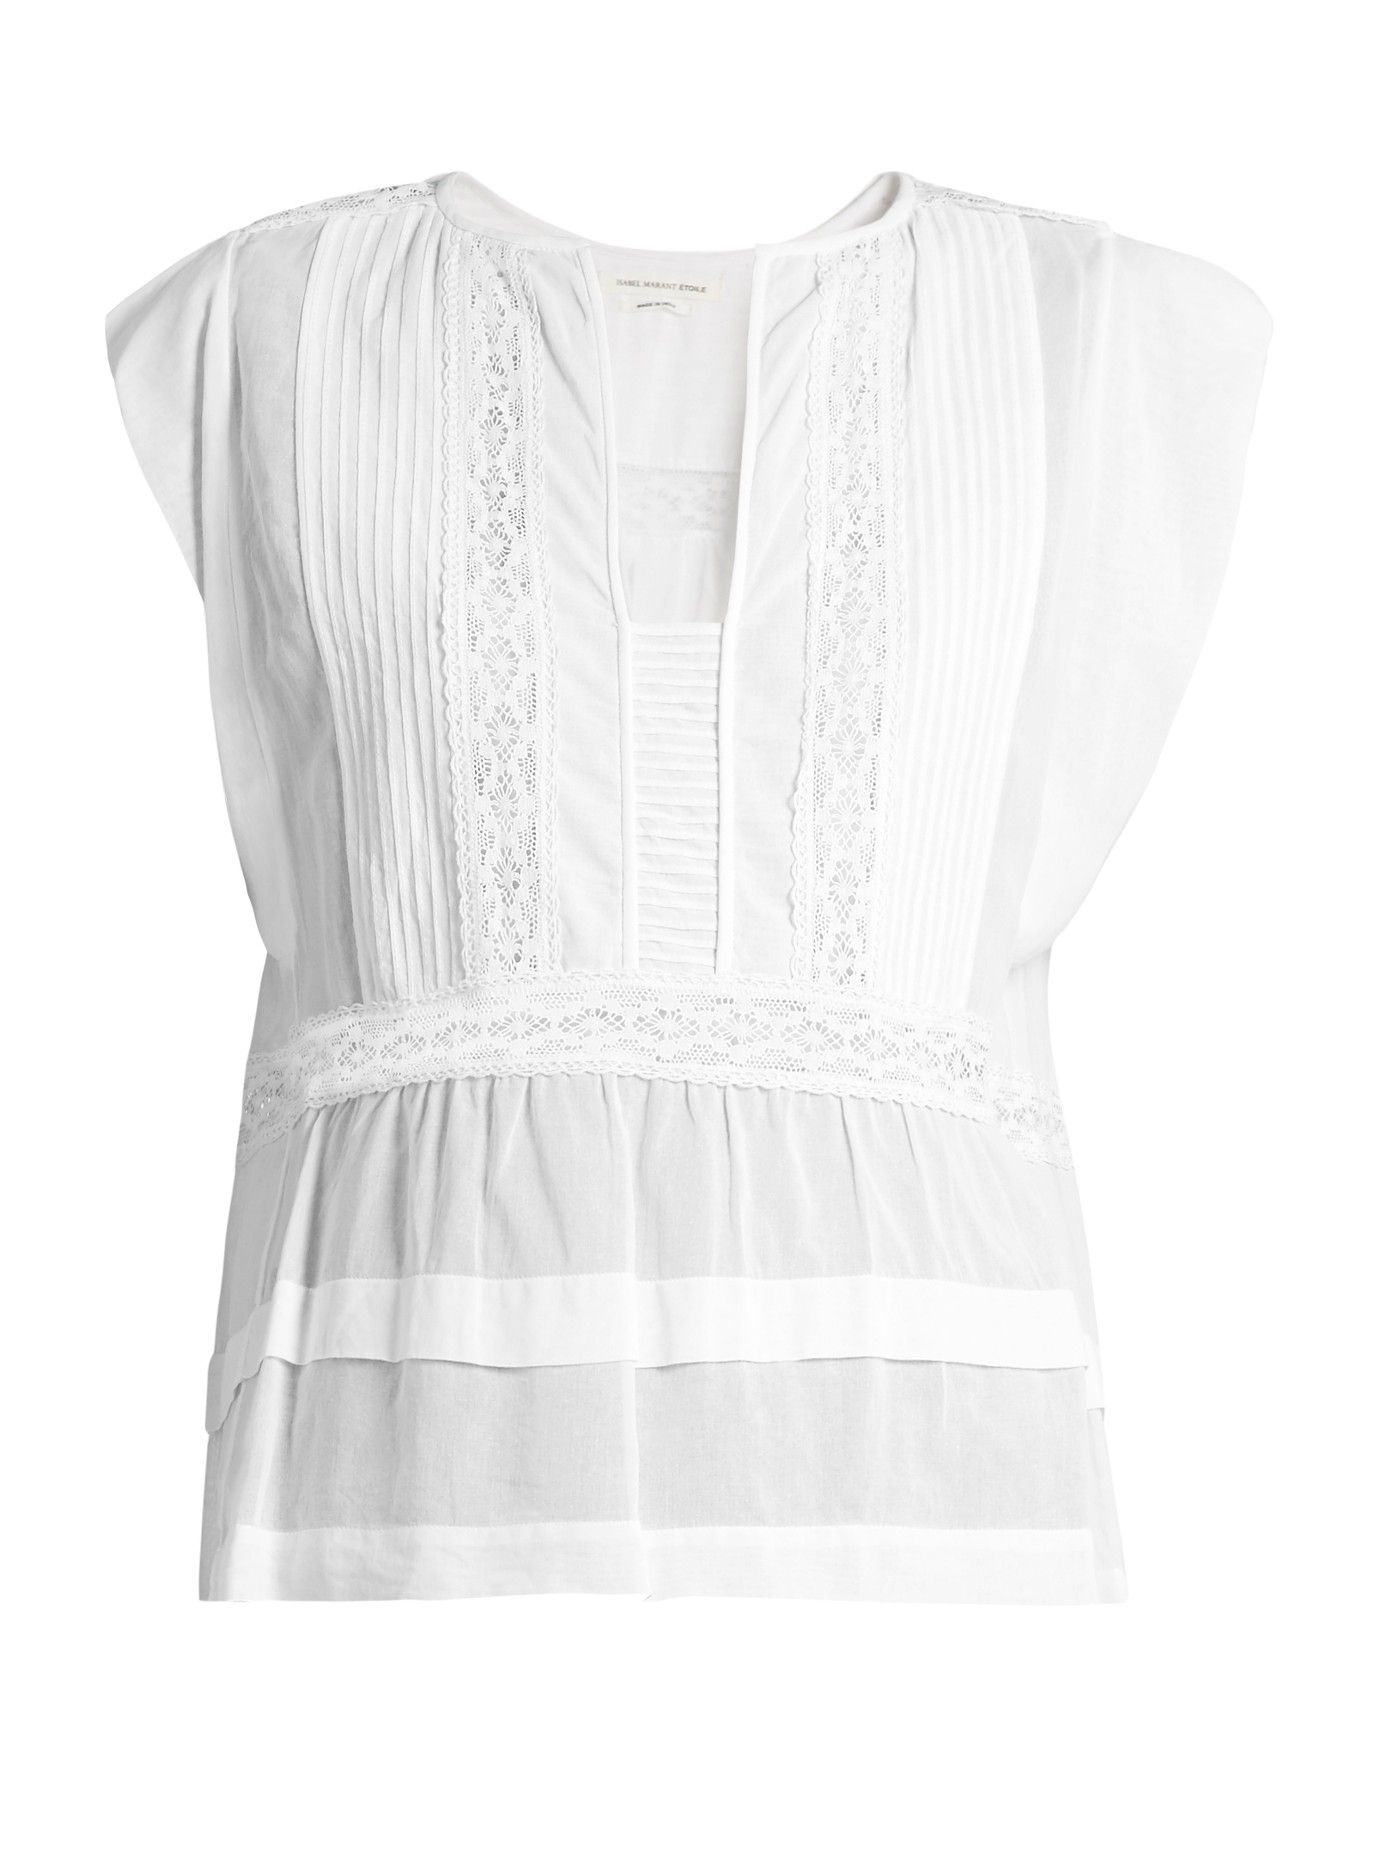 7c31cfaa09 Isabel Marant Étoile's Rodge top is crafted from sheer cotton-poplin,  reflecting the label's effortless Parisian style. The ruffle-capped sleeves  and ...